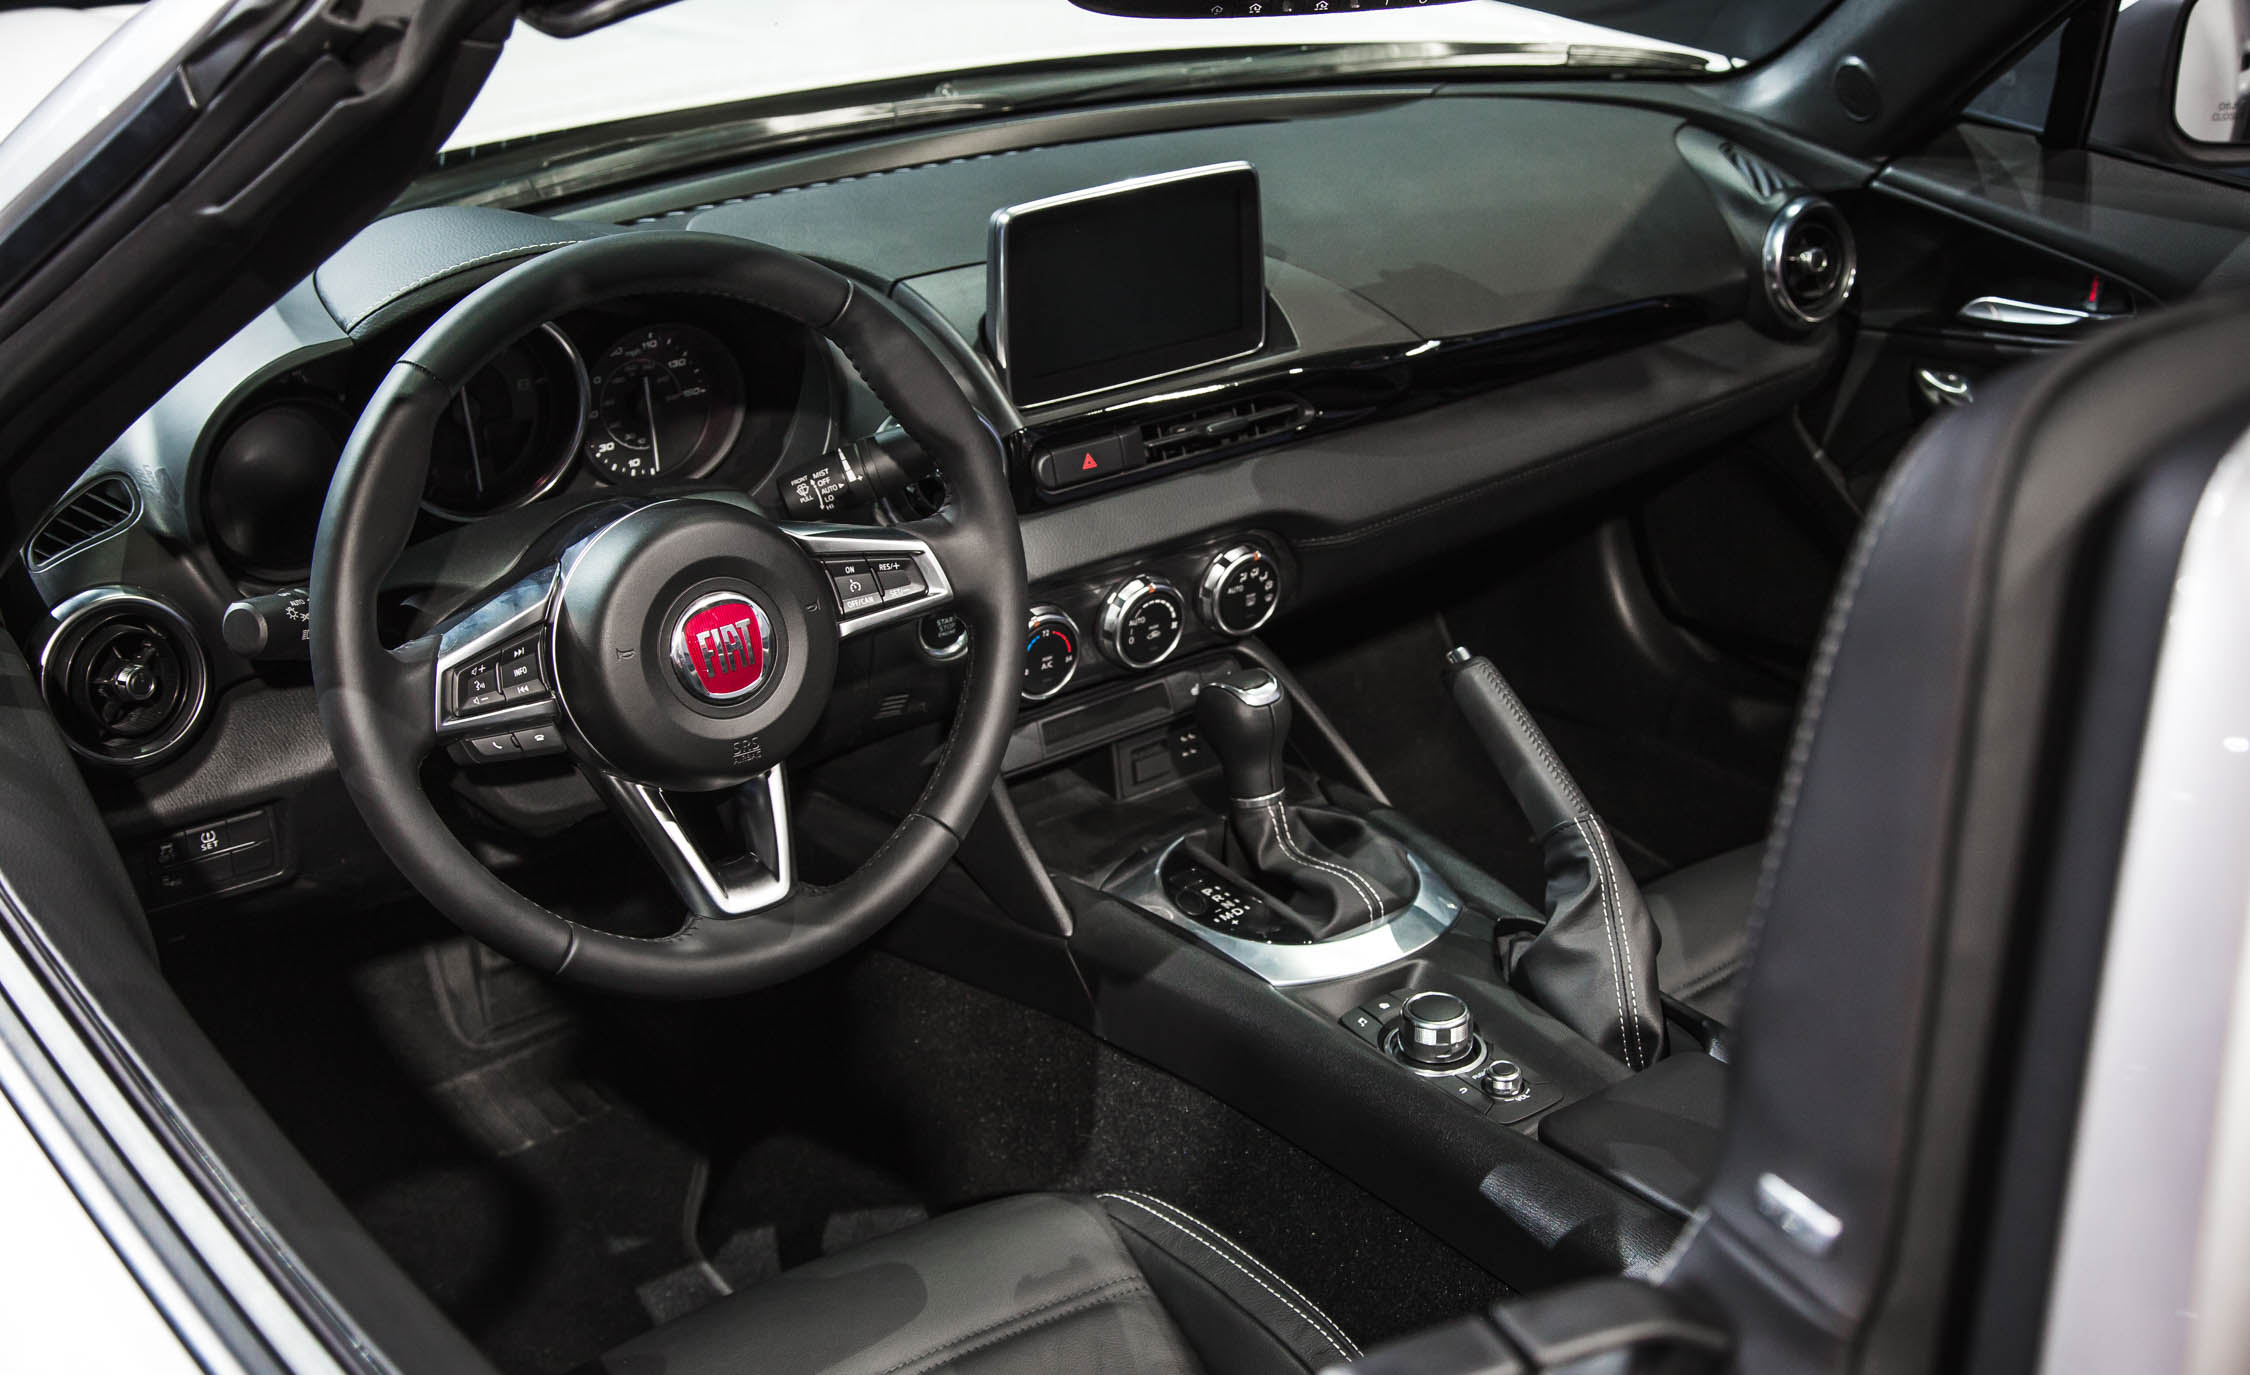 2017 Fiat 124 Spider Interior Cockpit and Dashboard